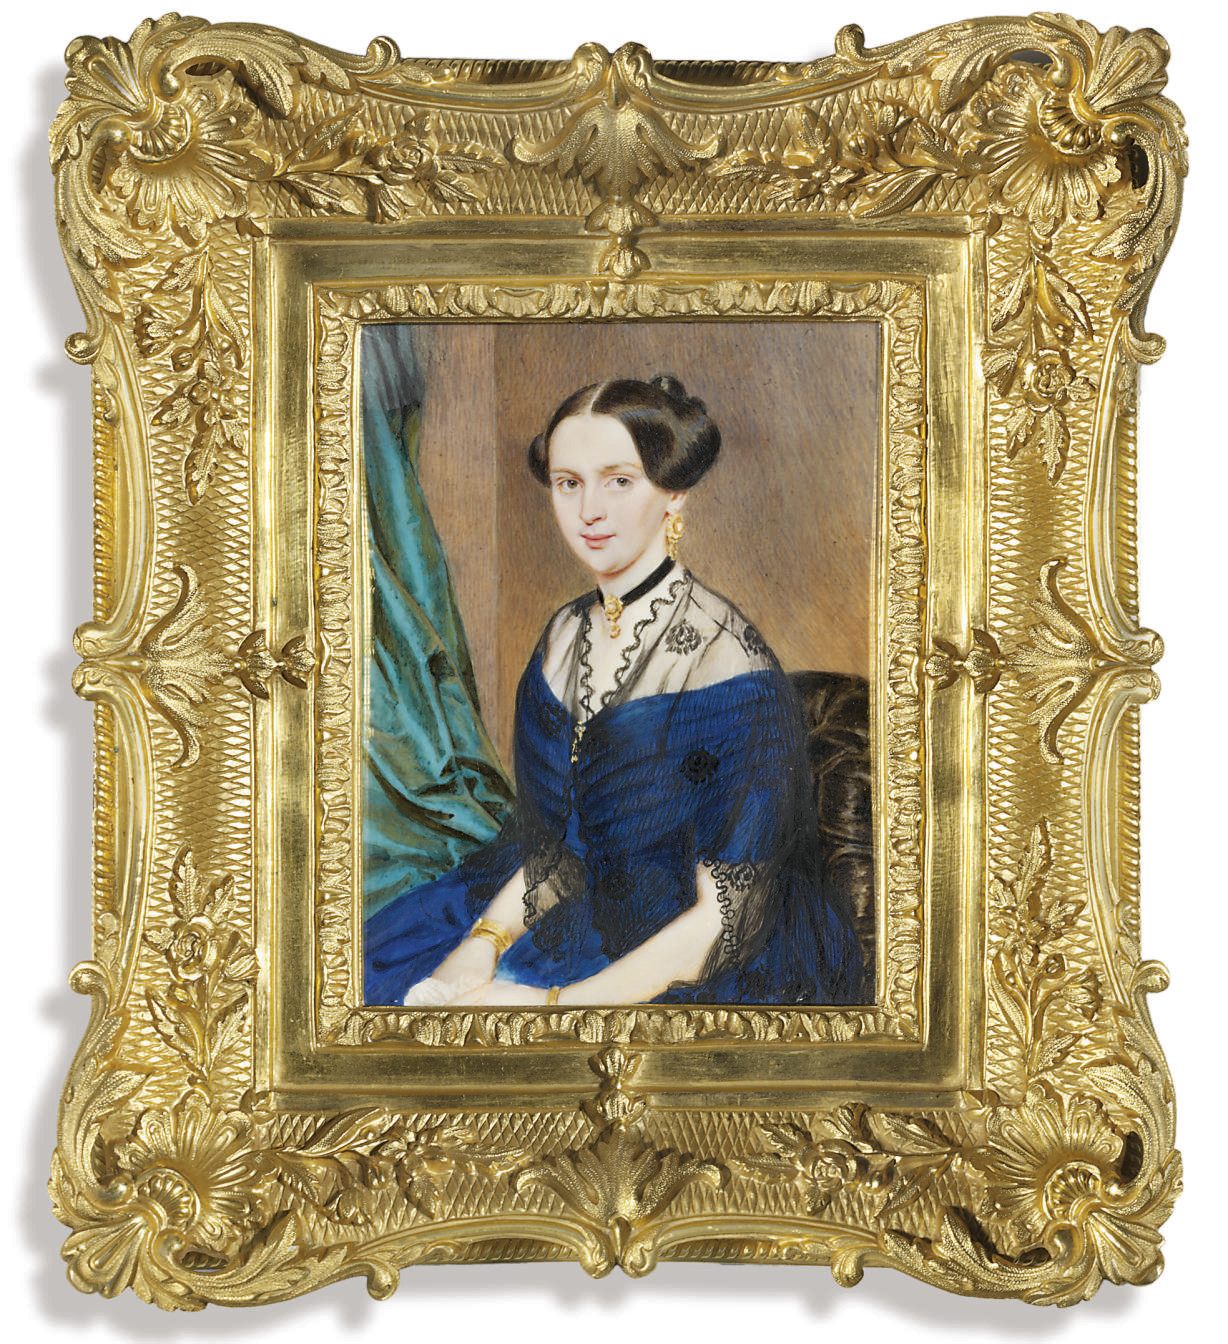 A young lady called Princess Galitzin née Moisseff (1834-1914), in off-the-shoulder blue dress, black gauze stole over her shoulders, a gem-set black choker, gold earring and bracelets, her dark hair upswept, seated in an upholstered black chair; green drapery background